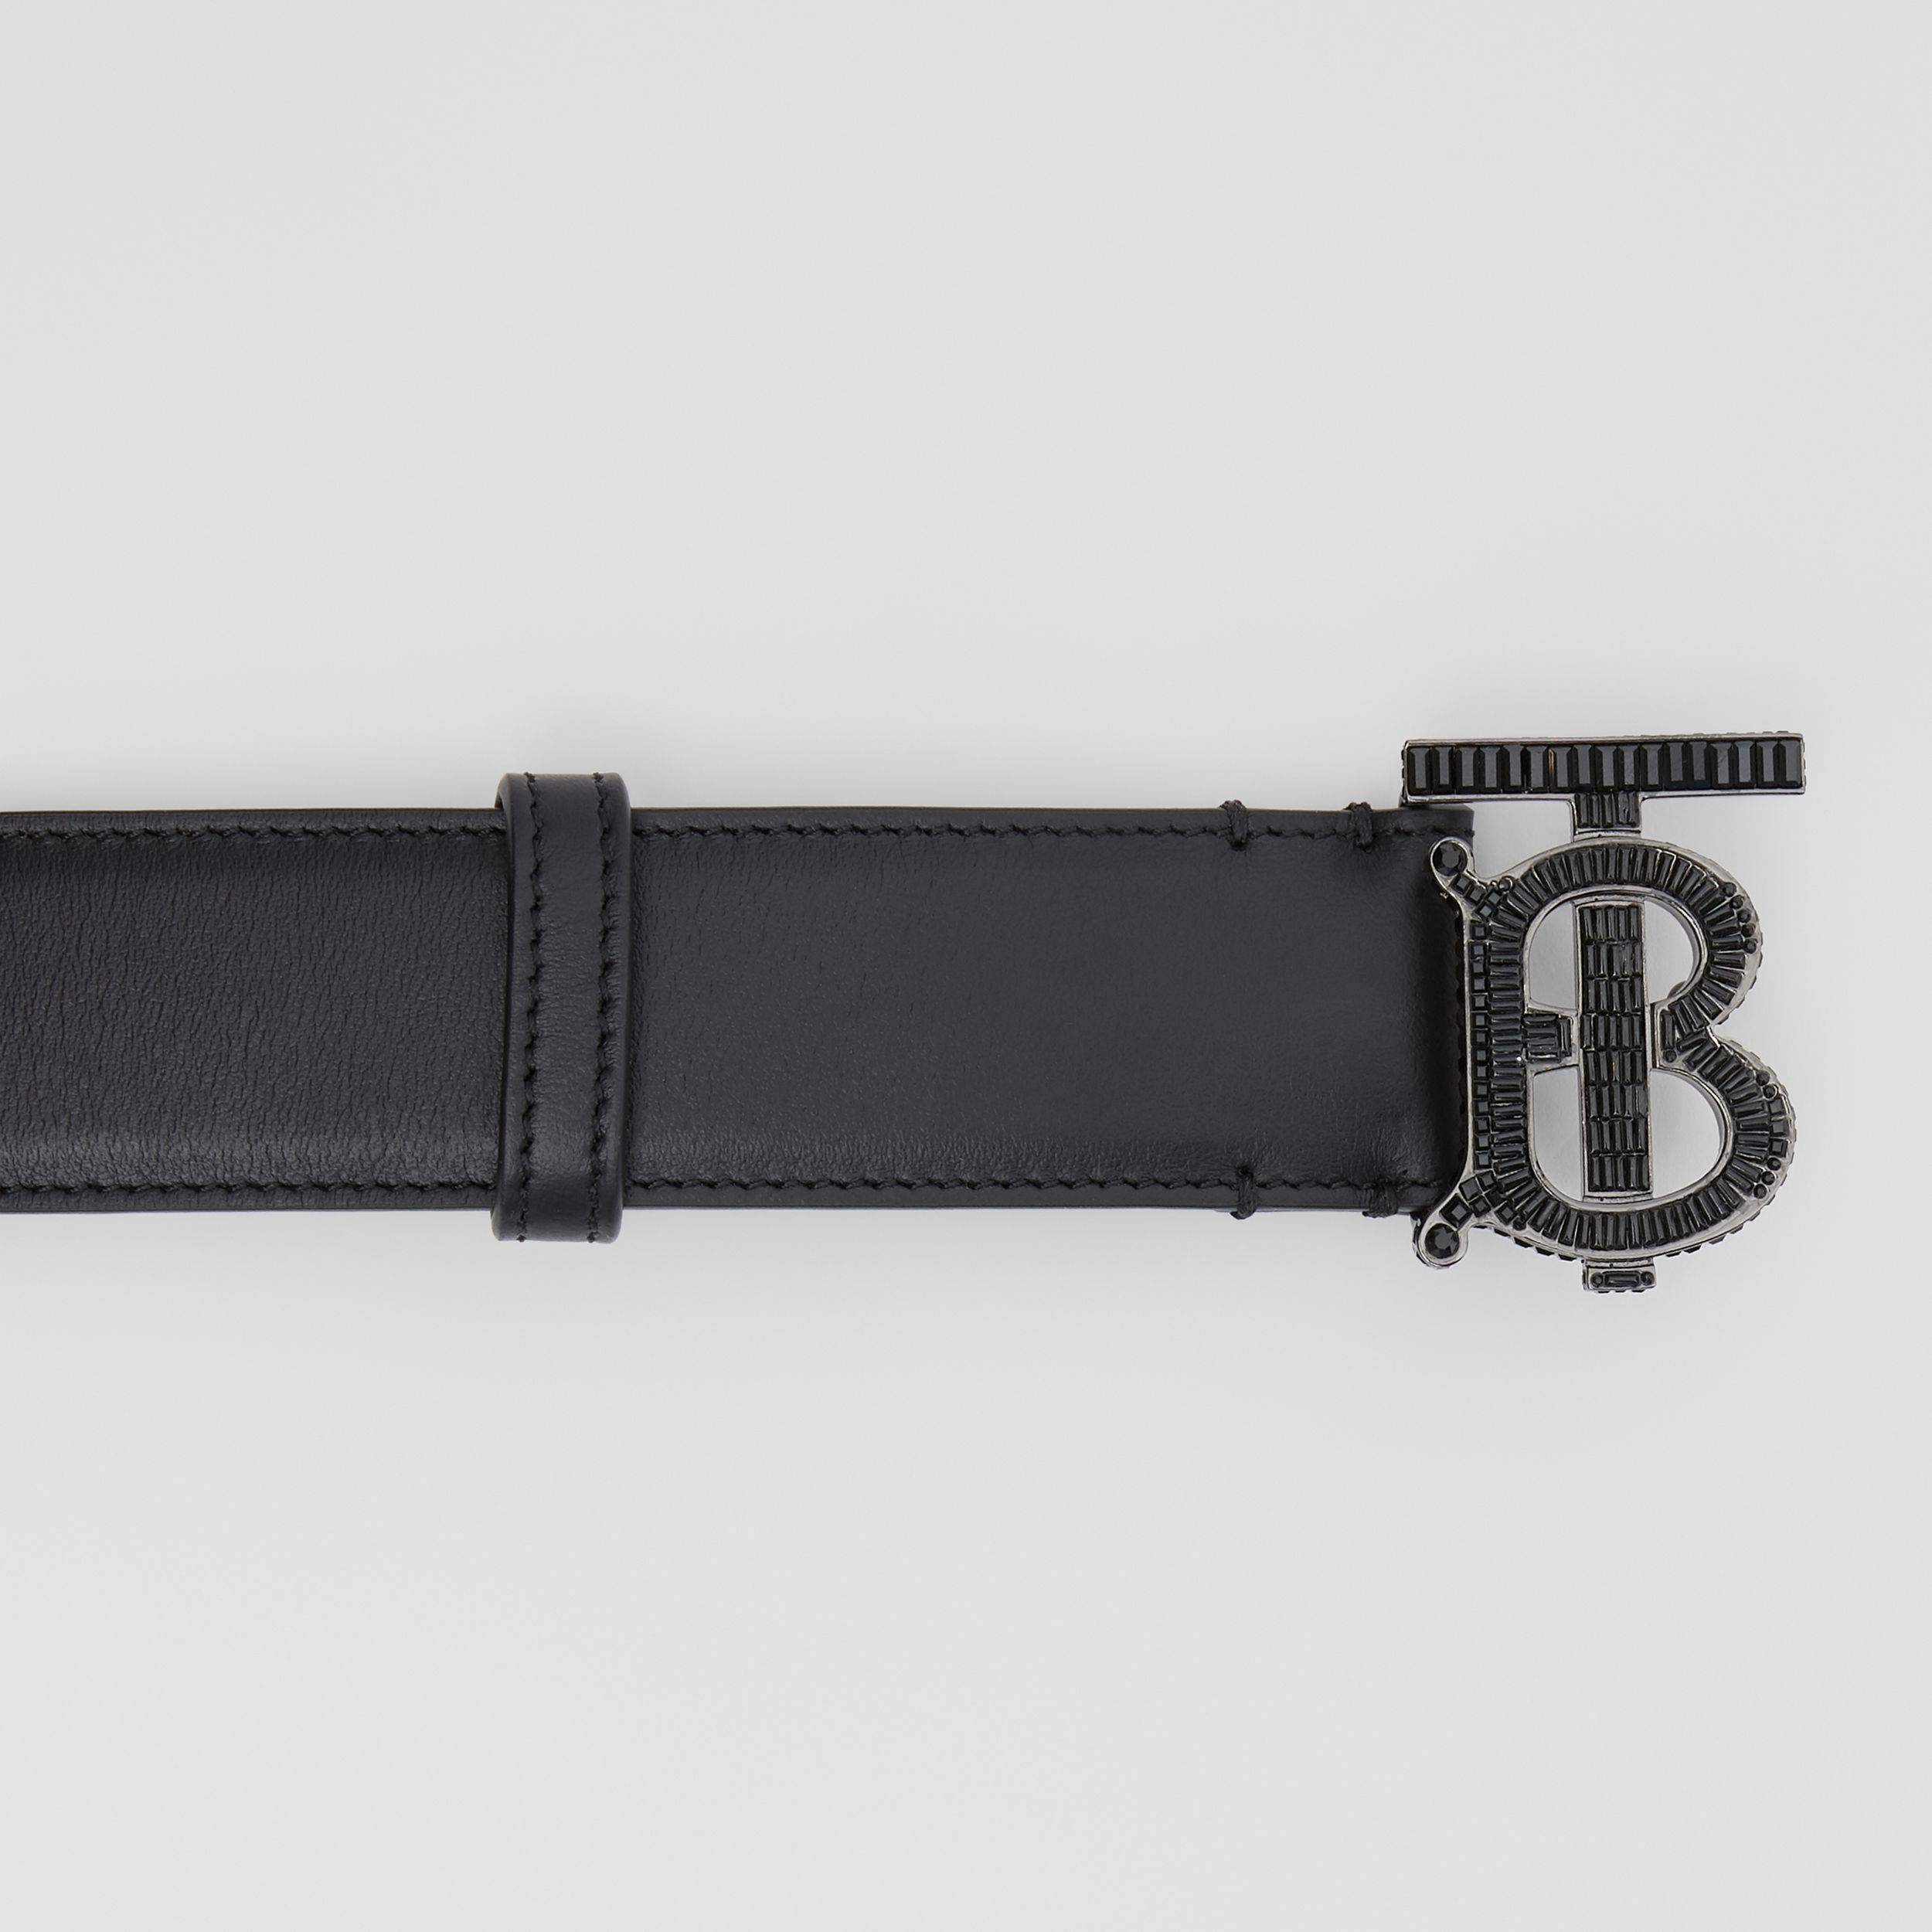 Crystal Monogram Motif Leather Belt in Black - Women | Burberry - 2